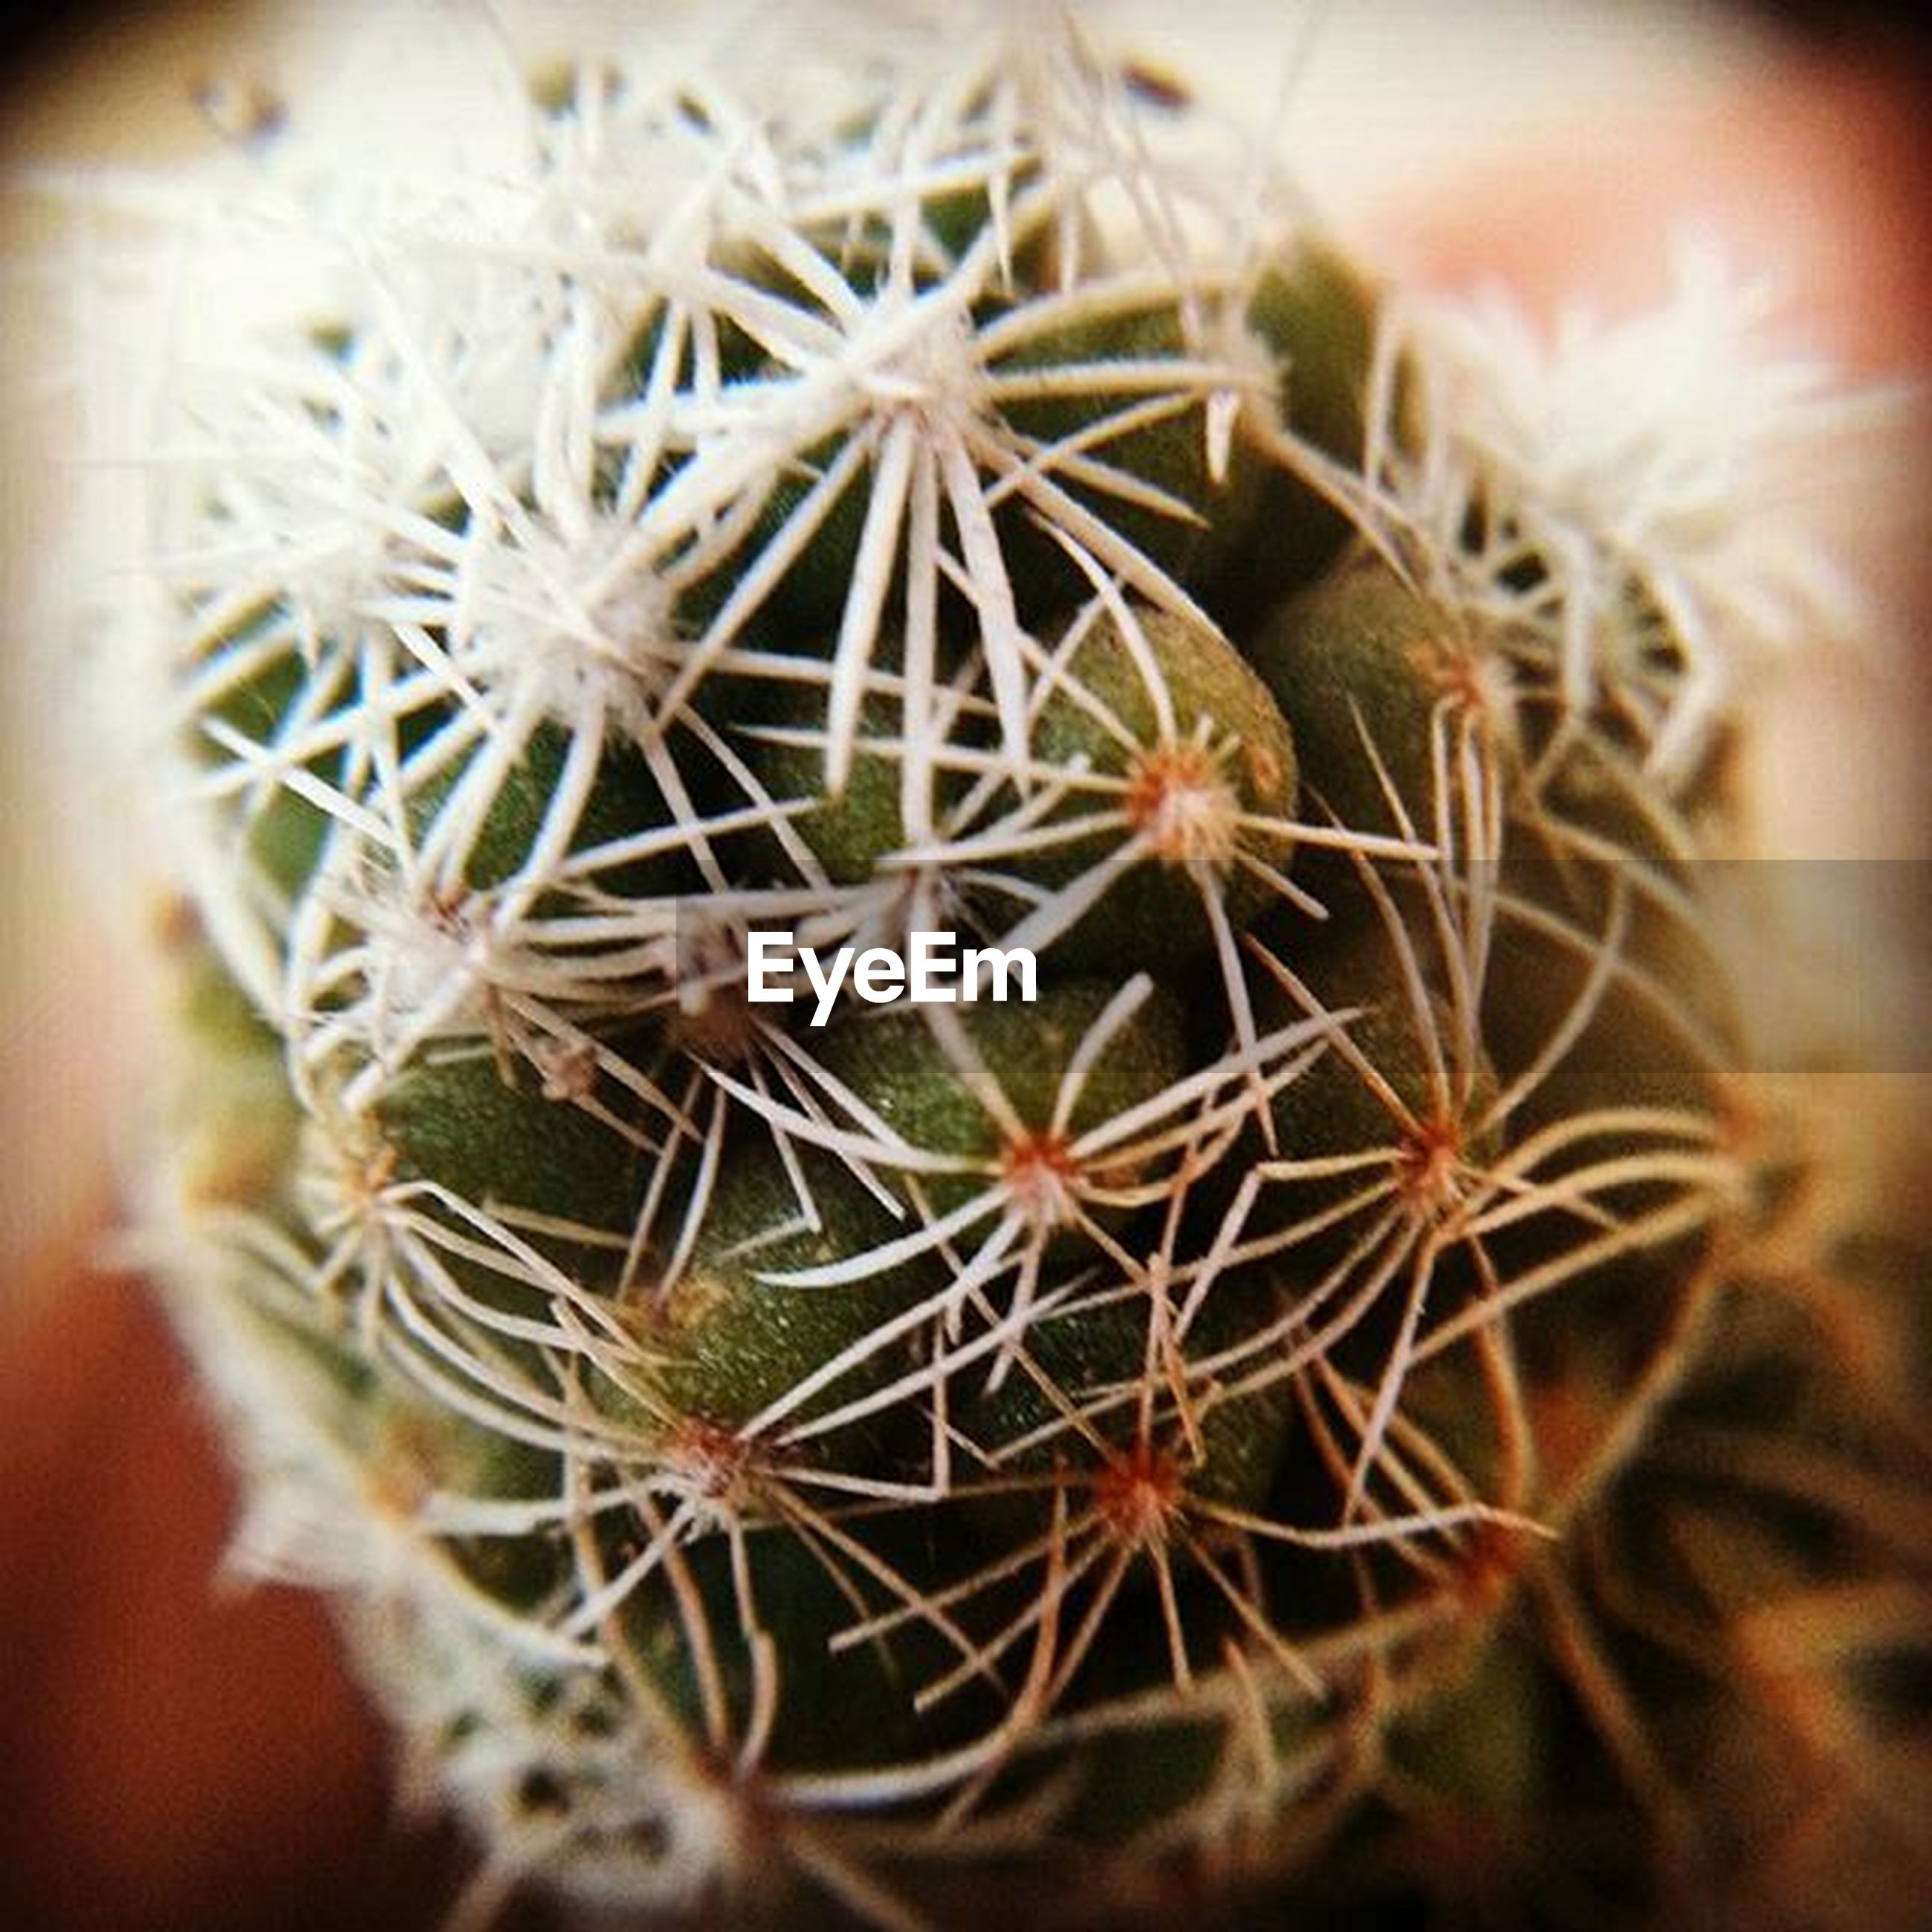 close-up, growth, focus on foreground, selective focus, plant, spiked, thorn, cactus, flower, fragility, nature, freshness, dandelion, seed, sharp, beauty in nature, dry, botany, stem, no people